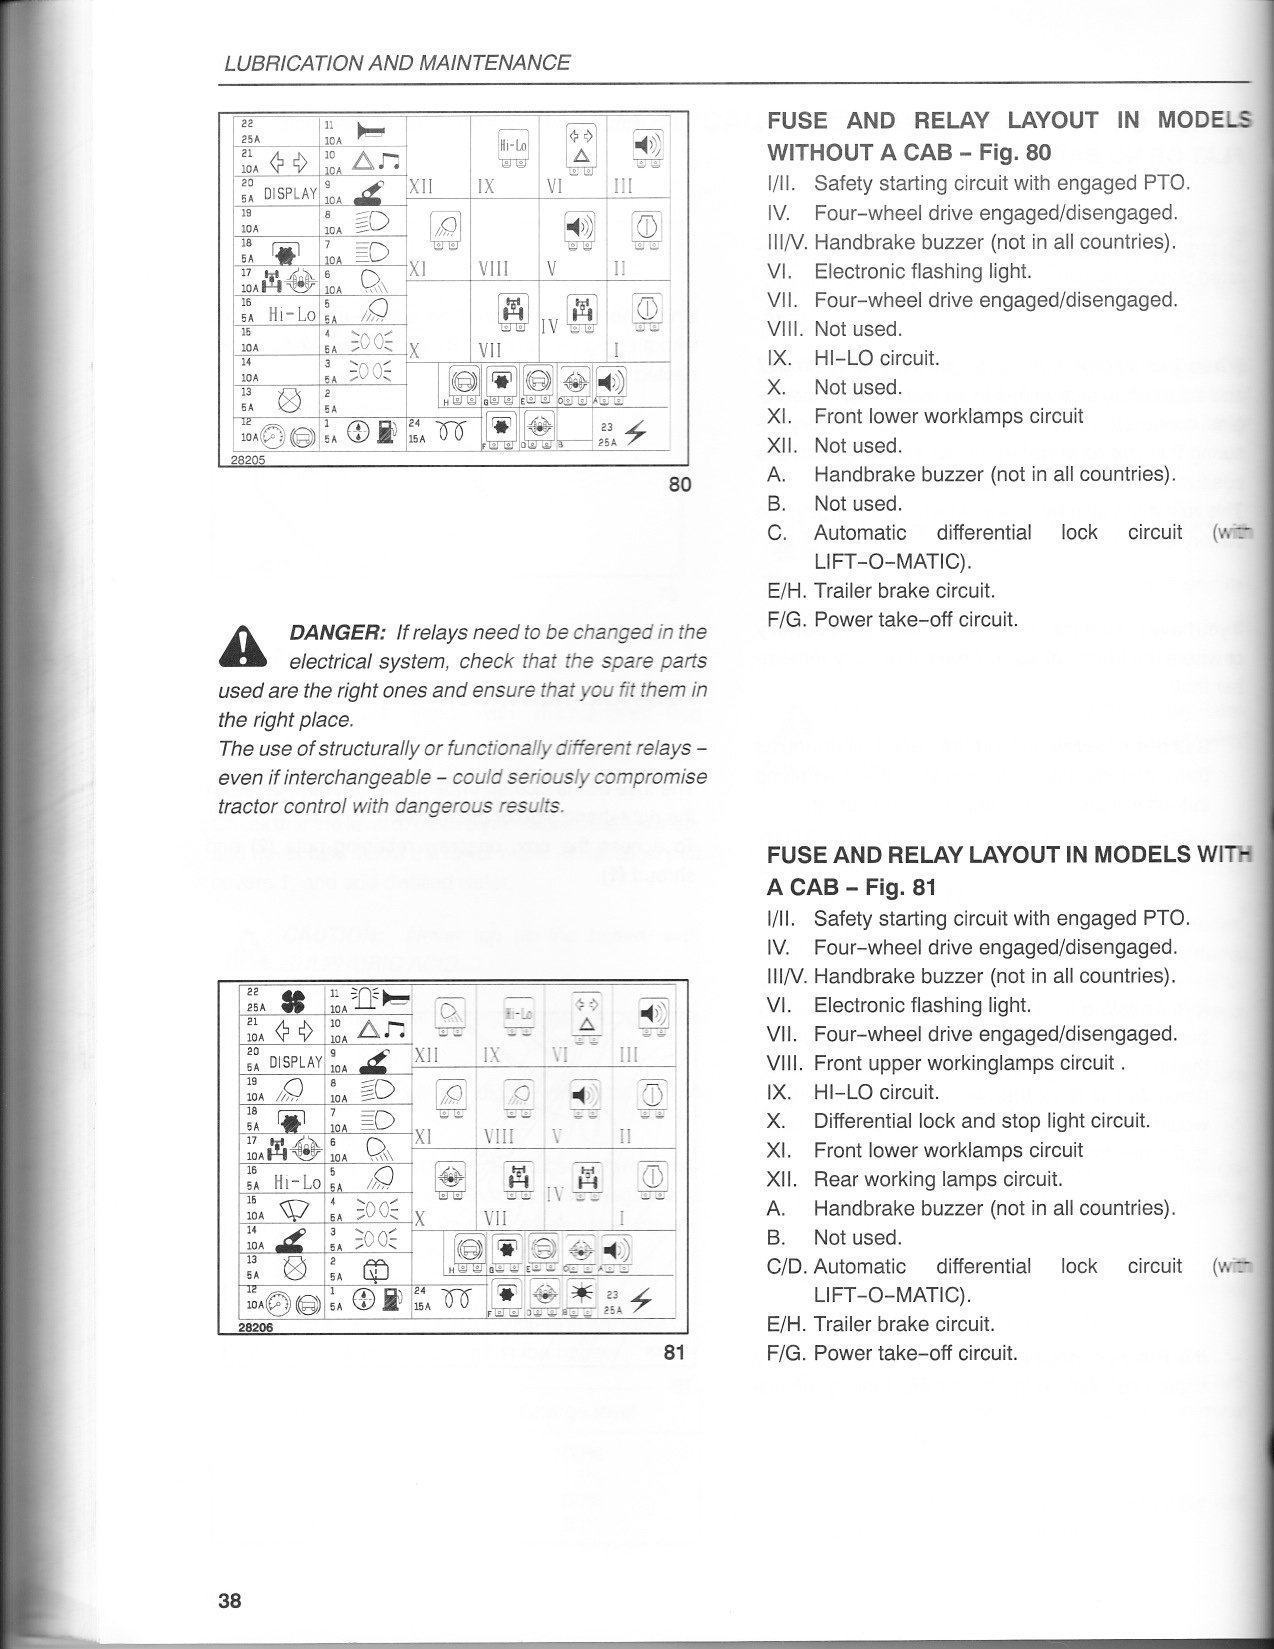 Volvo 240 Fuse Box Location Wiring Diagrams 91 Get Free Image About 1992 Diagram 1991